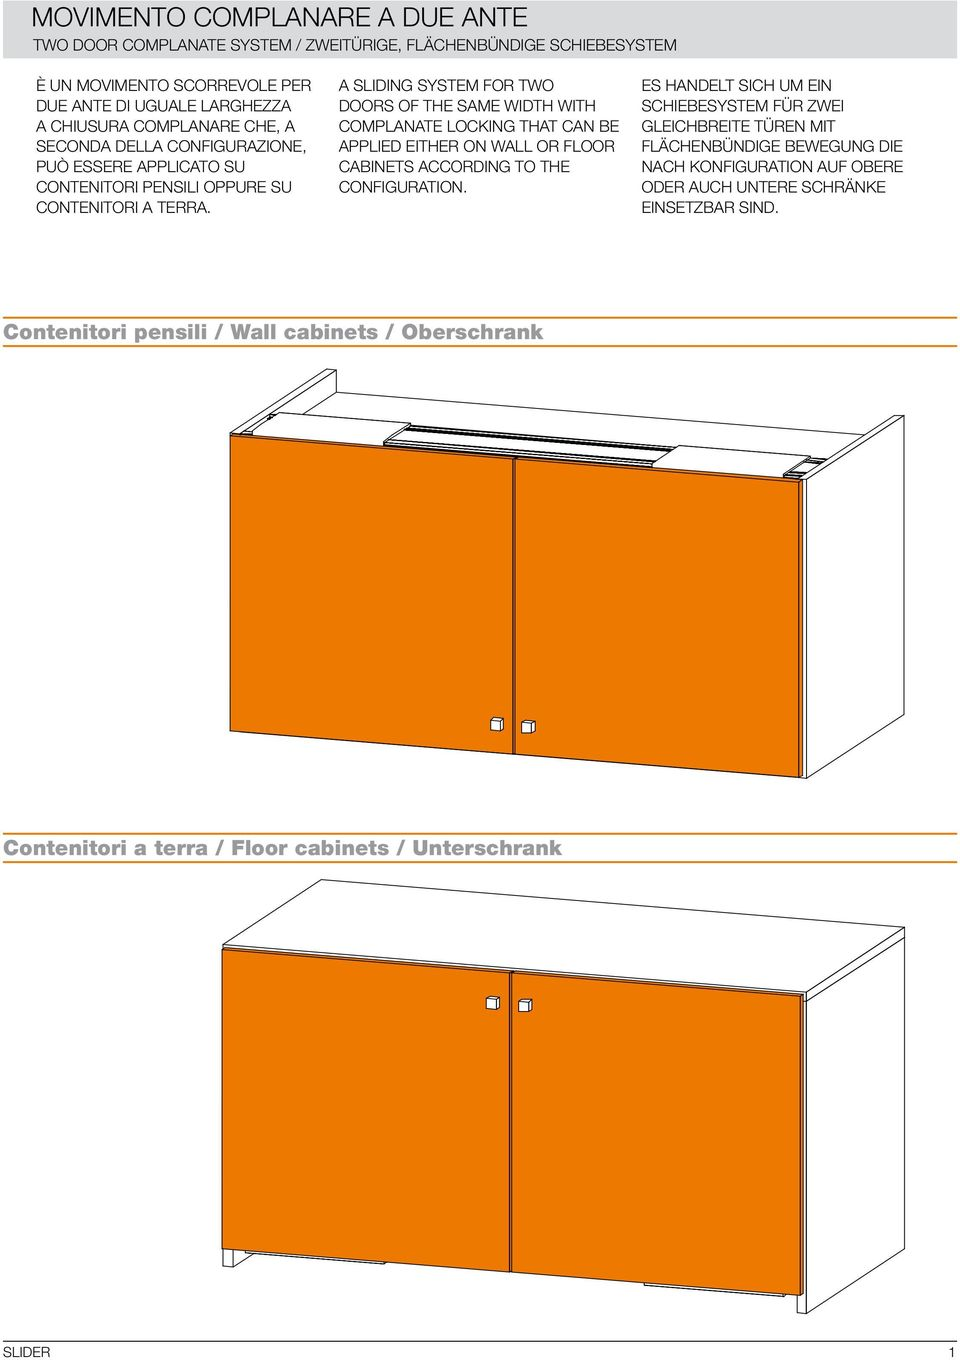 A SLIDING SYSTEM FOR TWO DOORS OF THE SAME WIDTH WITH COMPLANATE LOCKING THAT CAN BE APPLIED EITHER ON WALL OR FLOOR CABINETS ACCORDING TO THE CONFIGURATION.